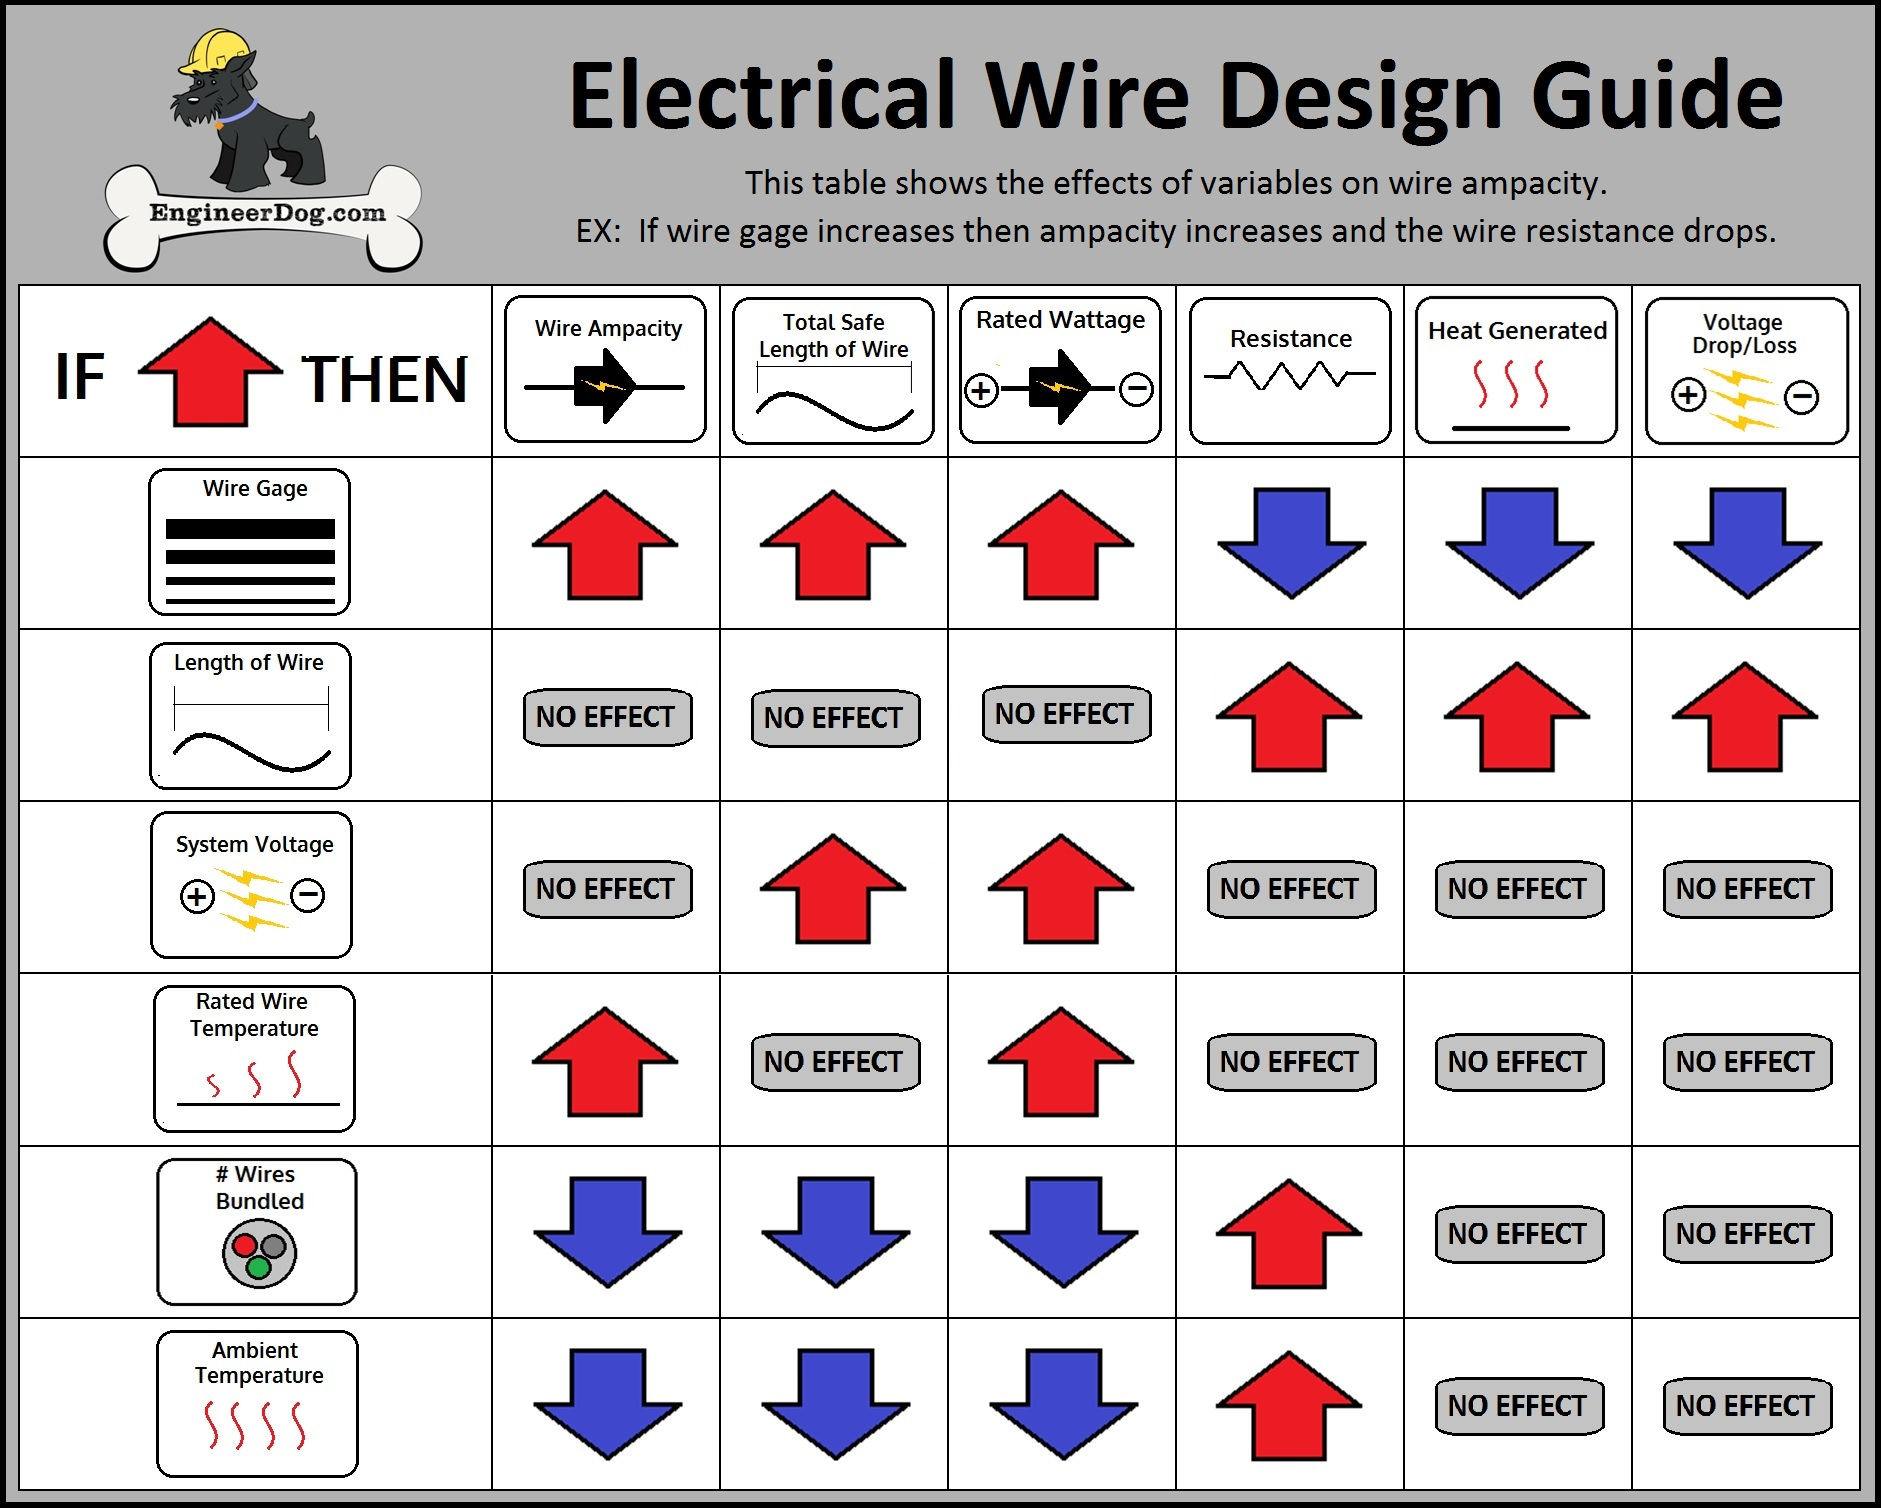 Dorable cable and gauge size chart vignette wiring diagram ideas automotive wire size chart wiring diagram greentooth Image collections